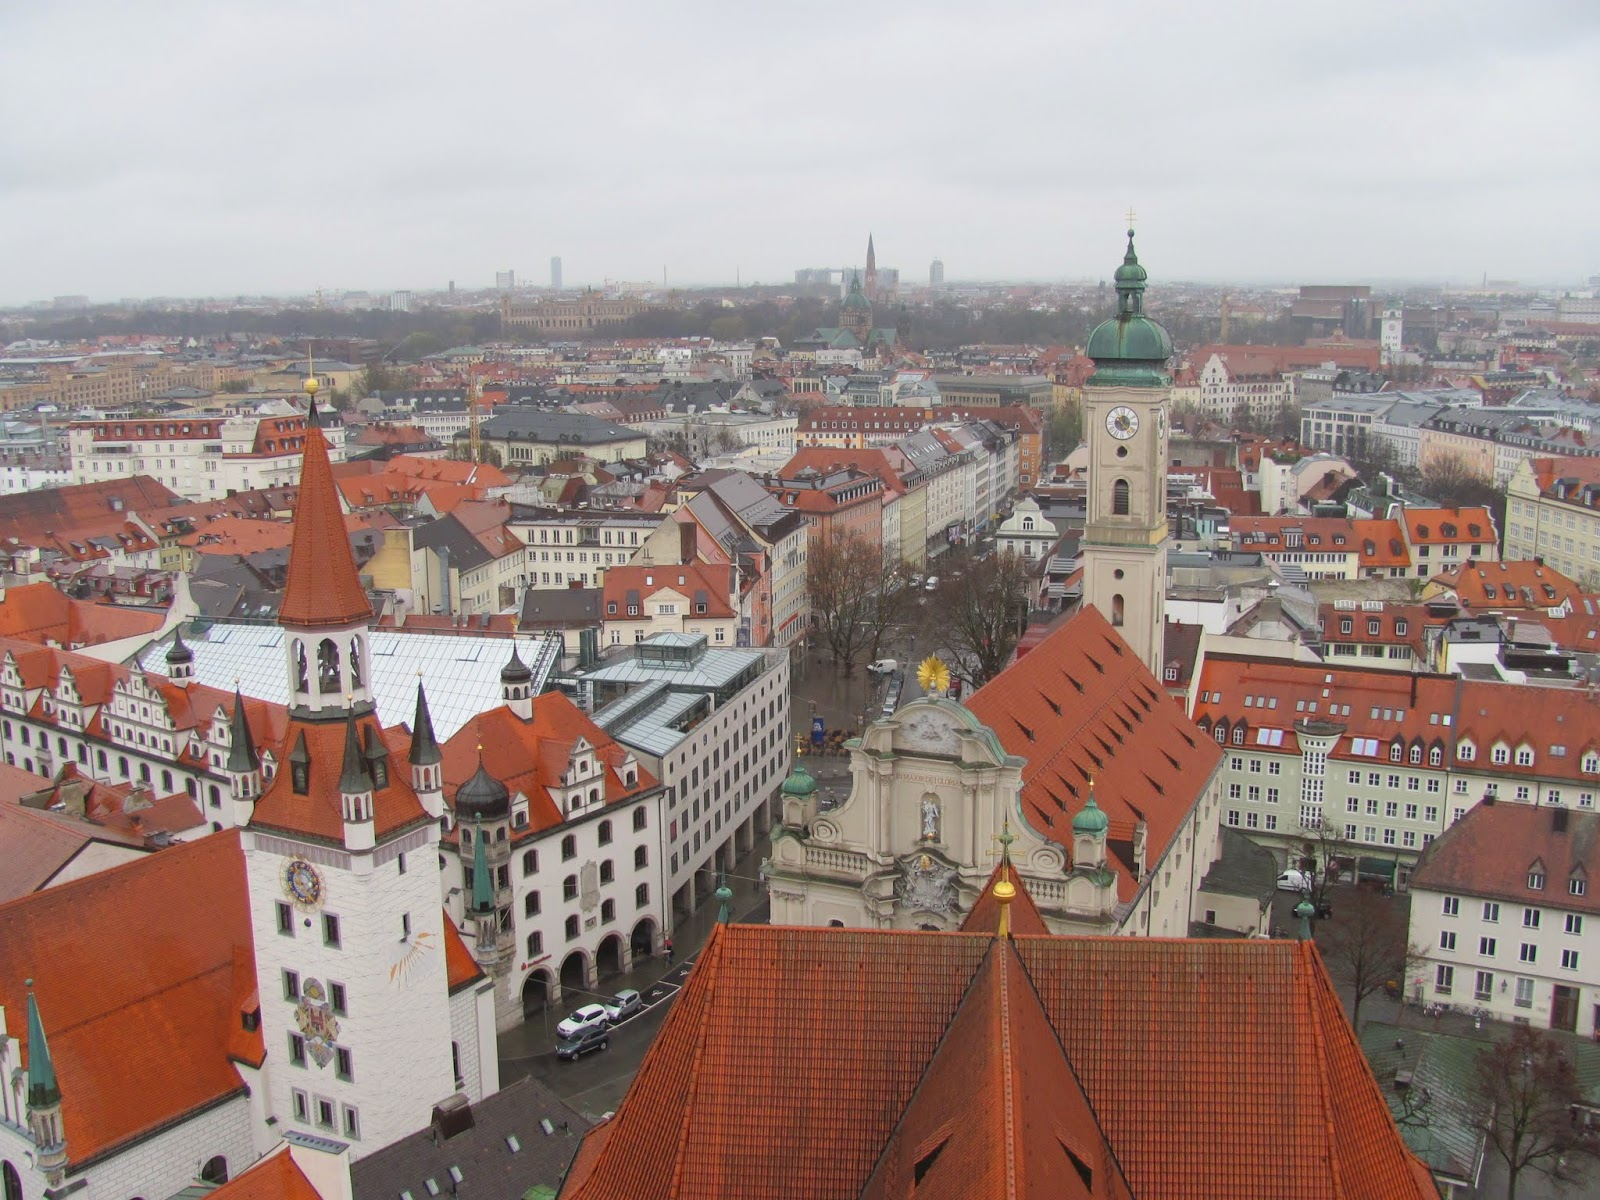 Away from Marienplatz Munich, Germany from St. Peter's Church tower